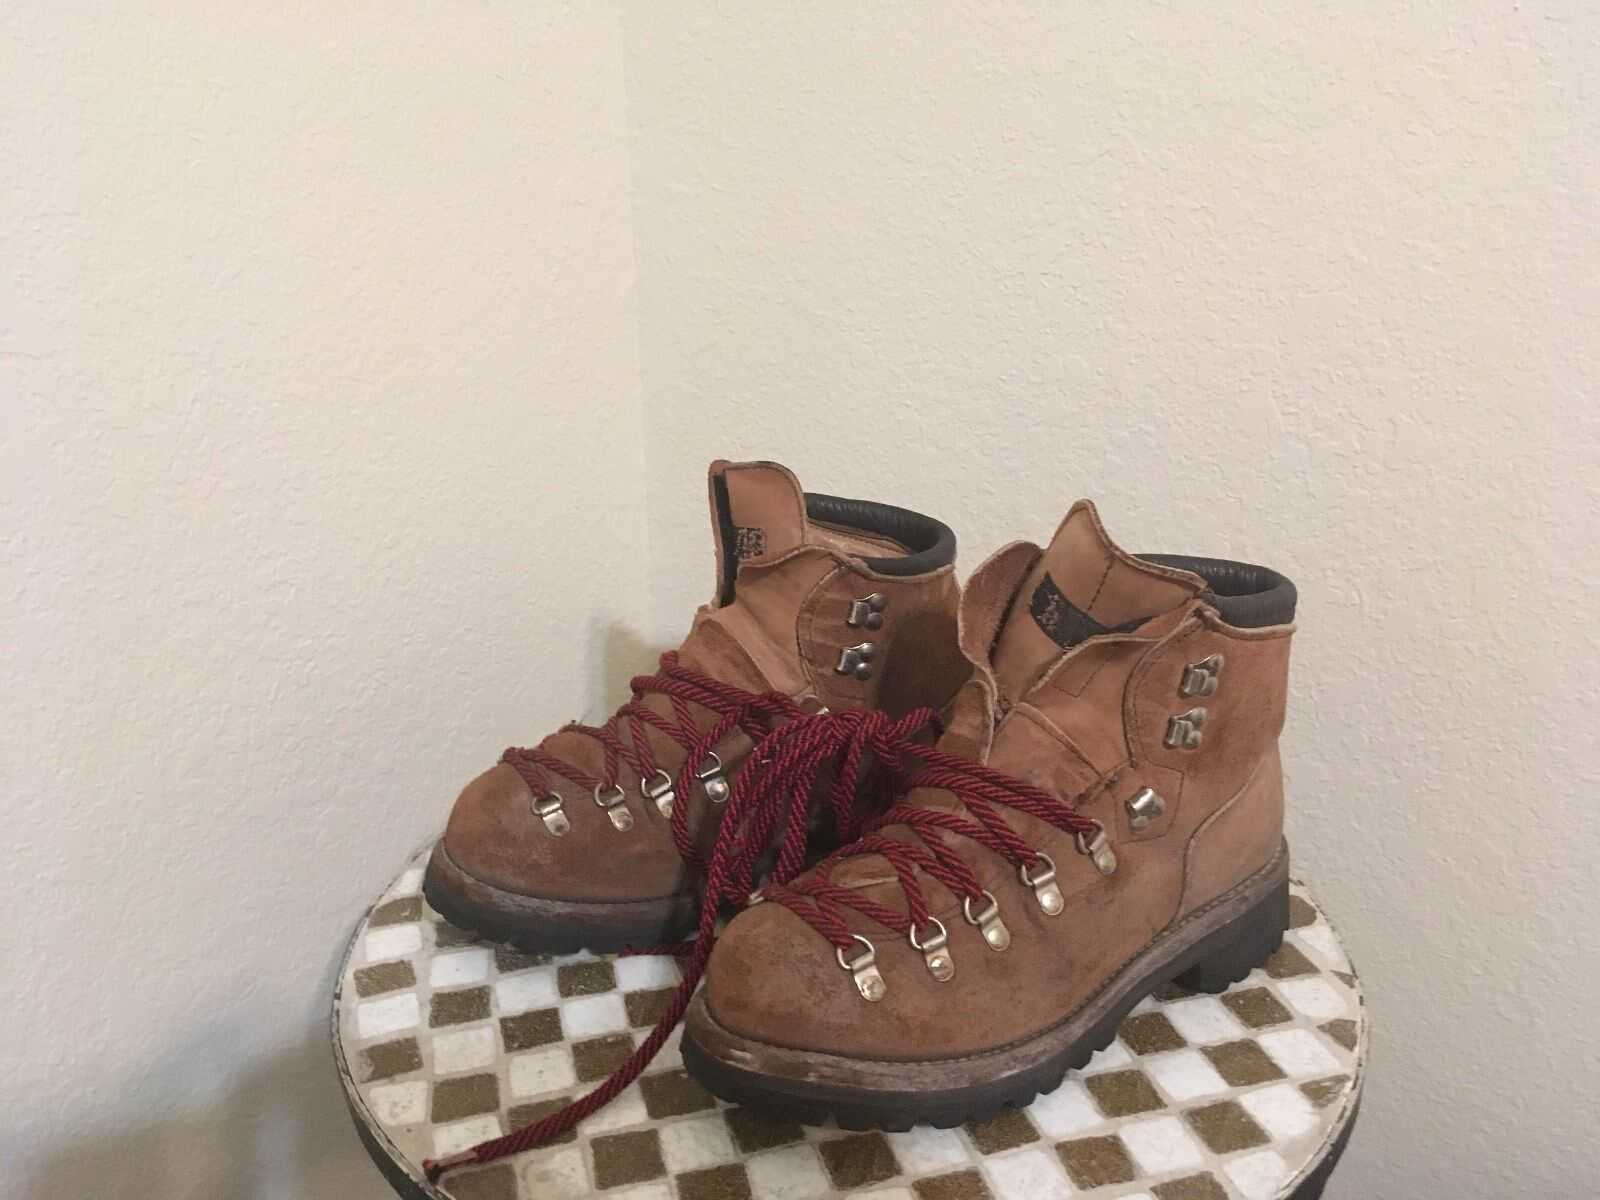 USA VINTAGE DEXTER MOUNTAIN HIKE TRAIL BOOTS 8 M